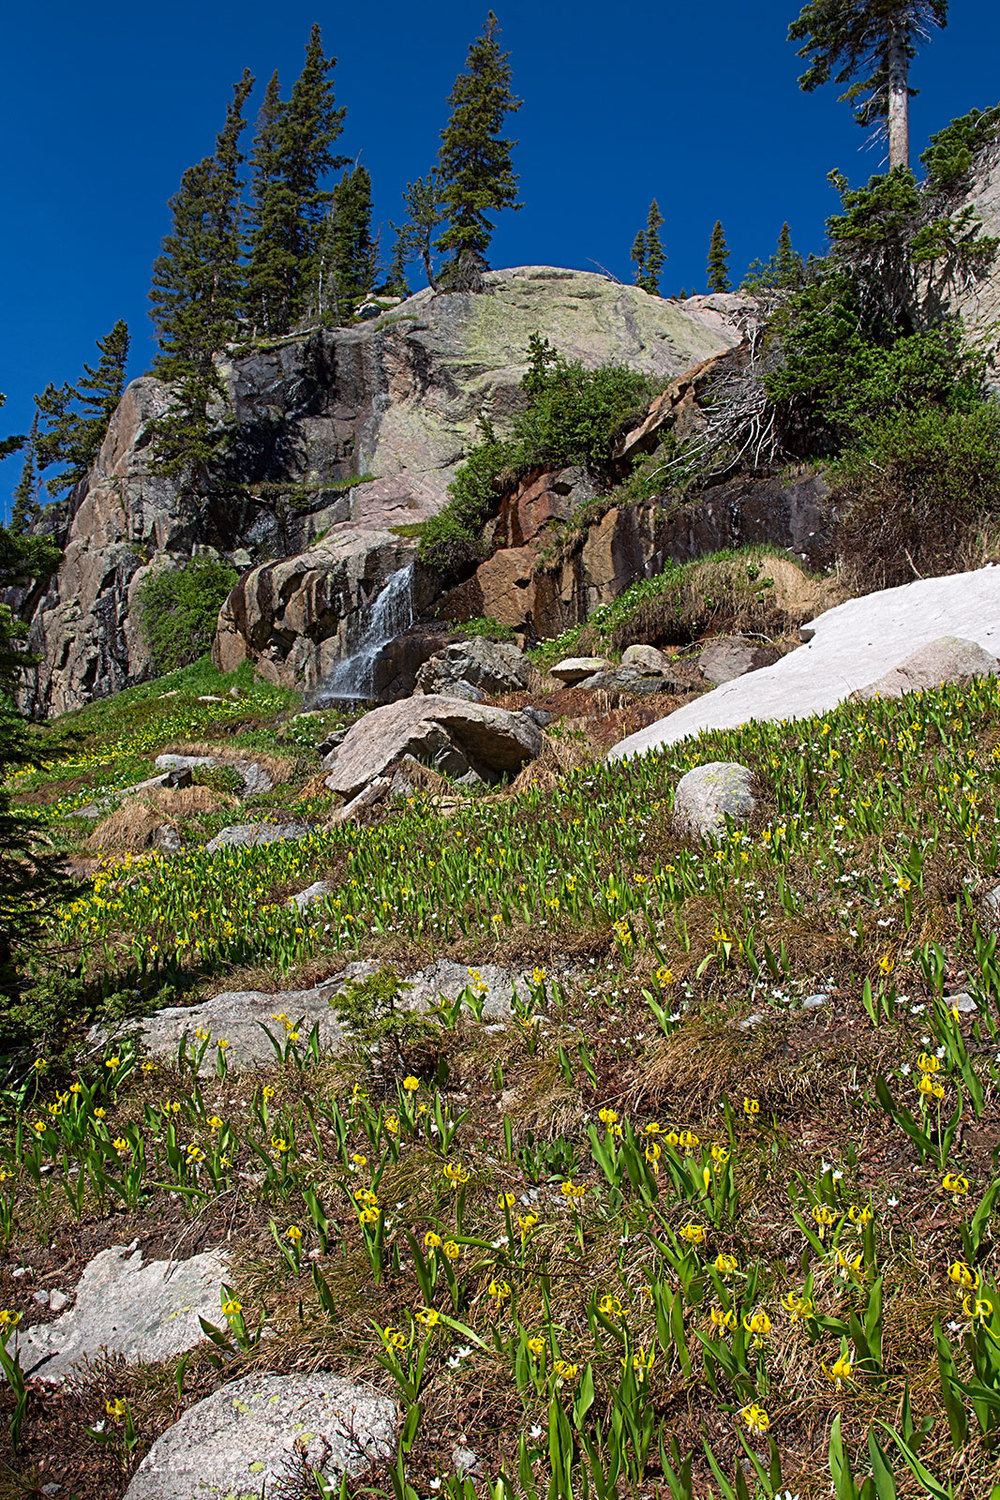 Lots of Glacier Lilies in bloom at around 10,000 feet.